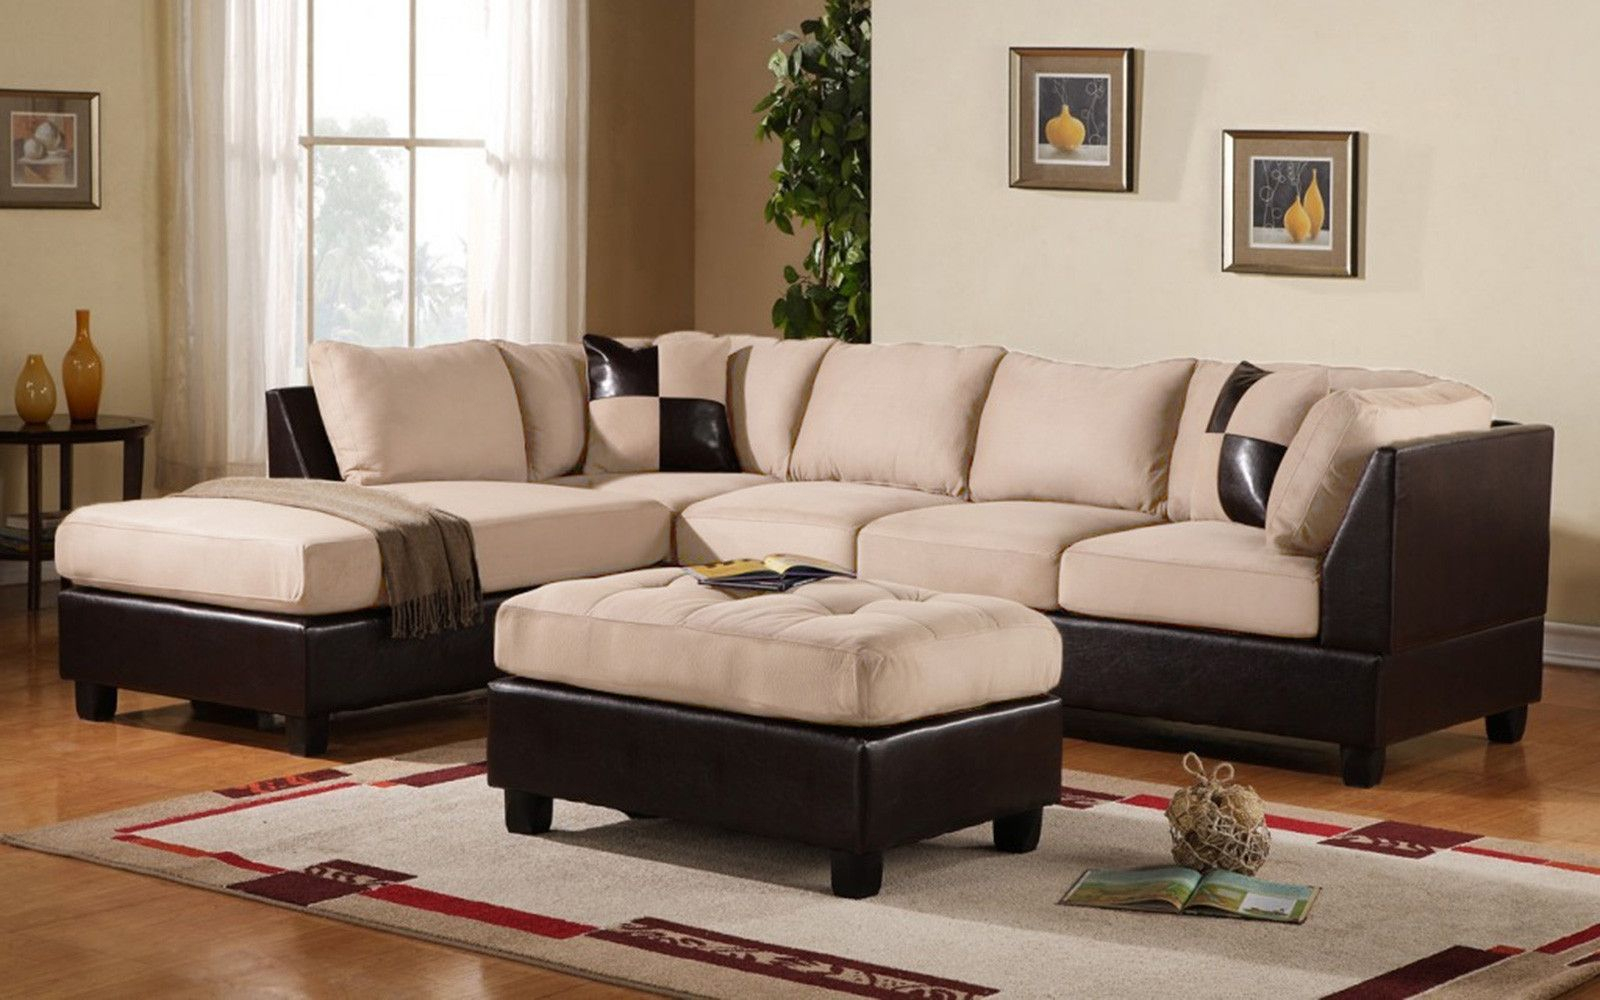 Koko Microfiber Bonded Leather Sectional | Microfiber With Regard To 3Pc Bonded Leather Upholstered Wooden Sectional Sofas Brown (View 1 of 15)